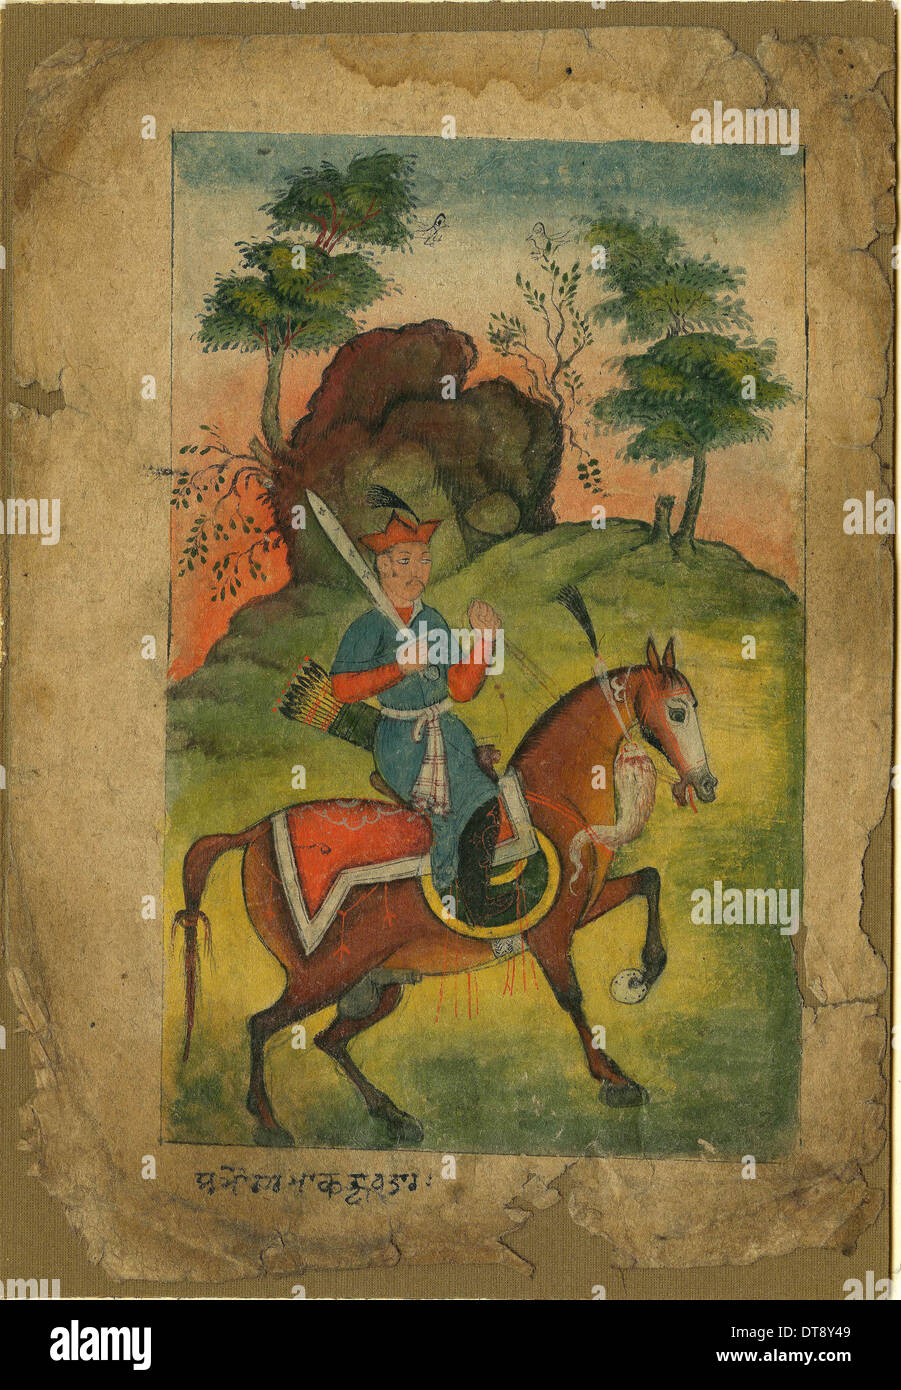 Indian armed cavalryman, c. 1500. Artist: Indian Art - Stock Image